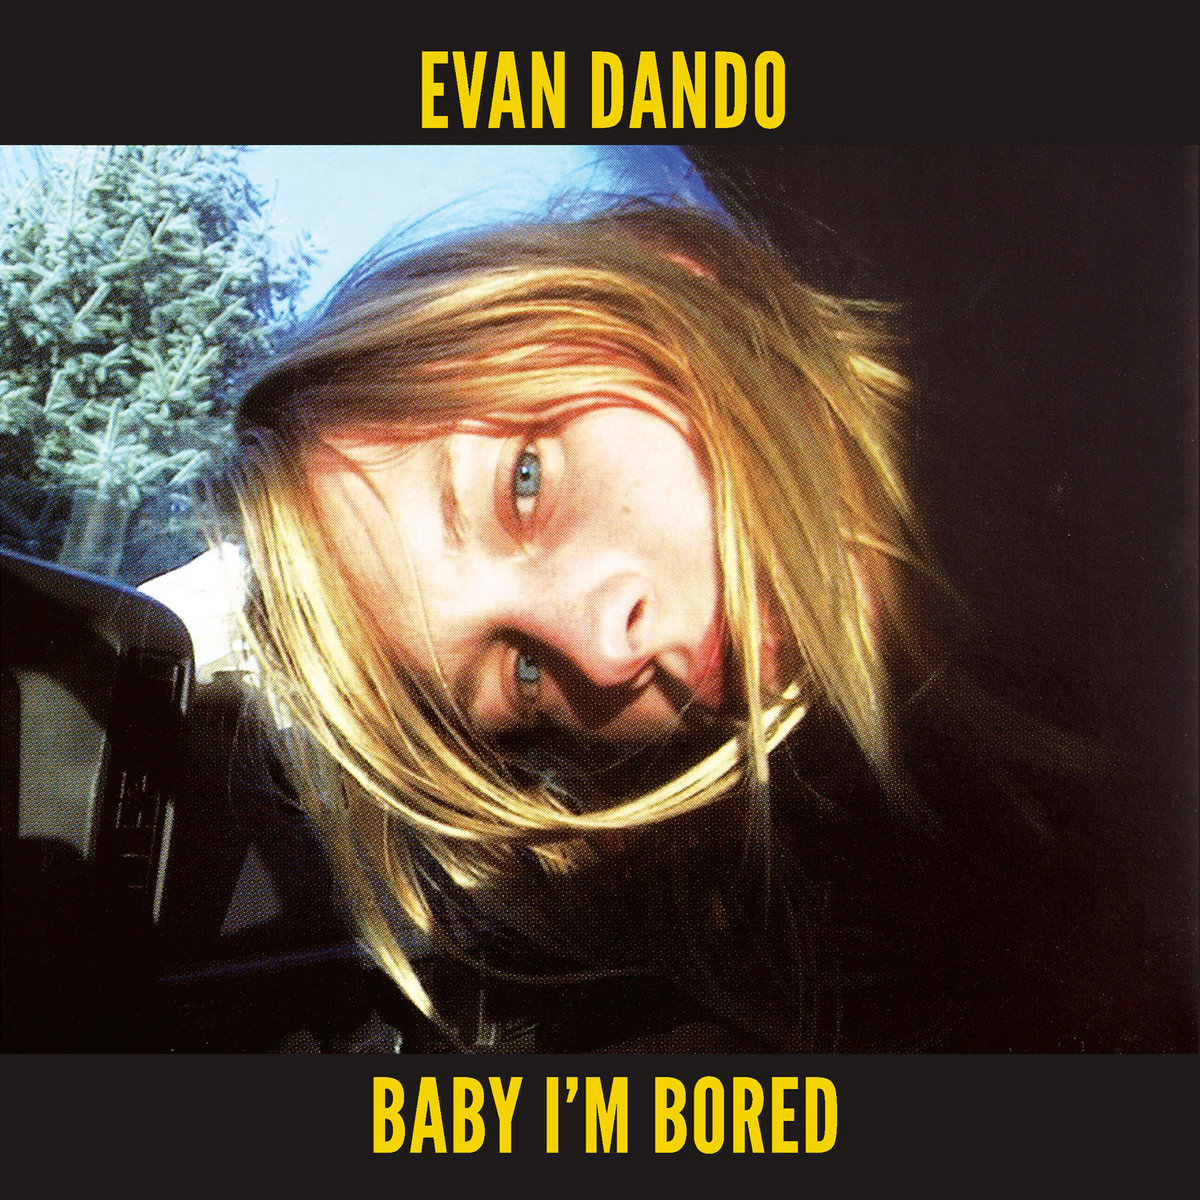 Why do you do this to yourself evan dando from baby im bored by evan dando solutioingenieria Gallery